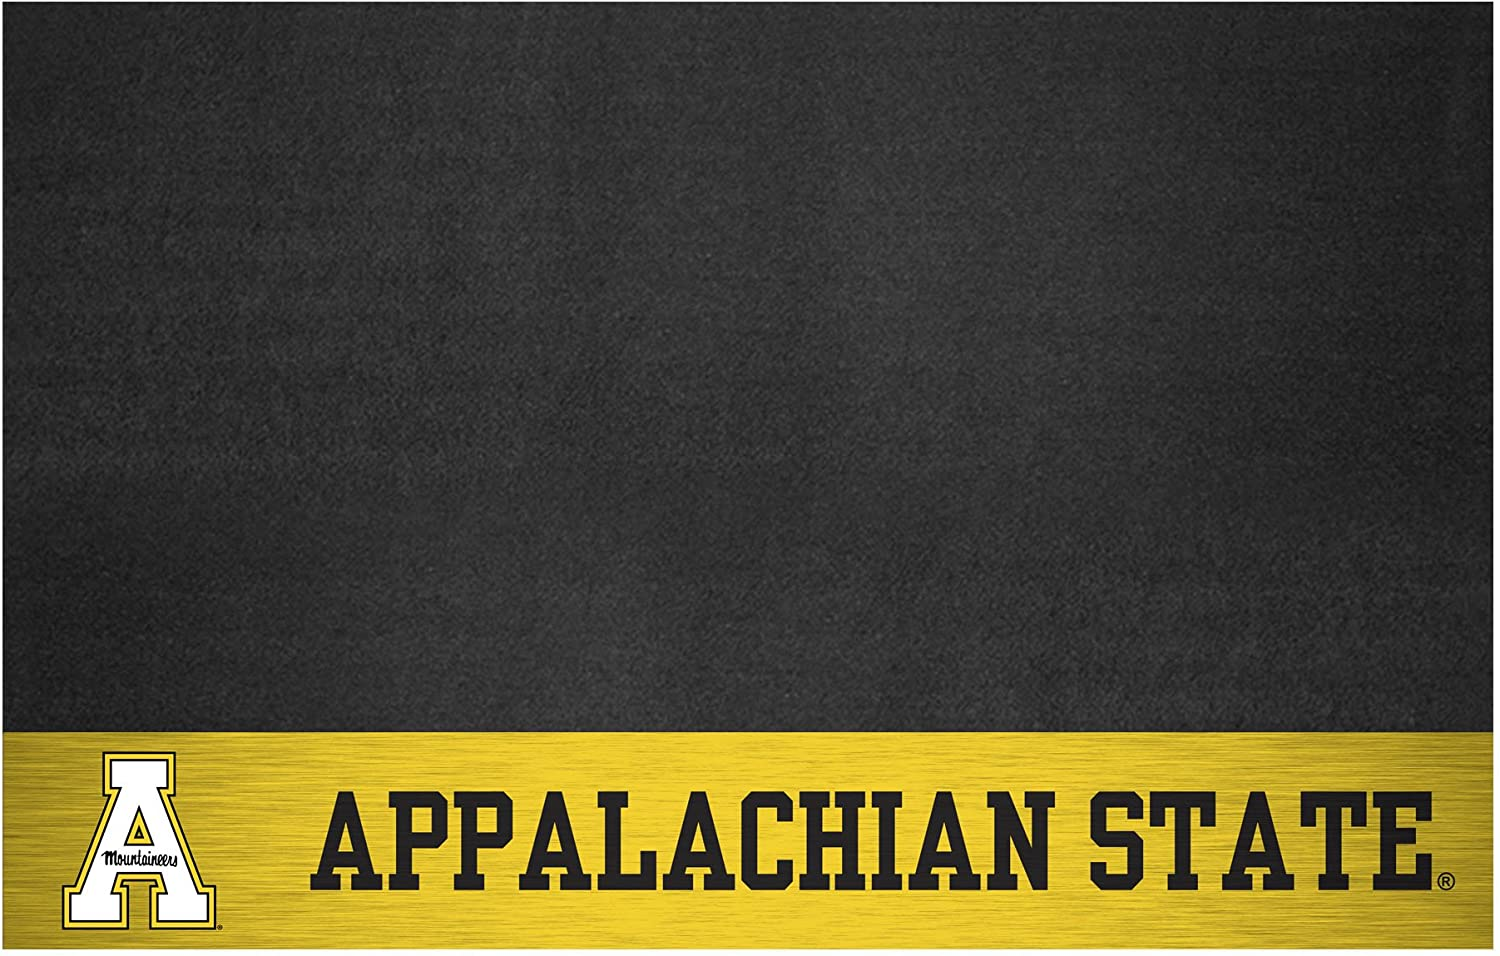 FANMATS 21623 Appalachian State Grill Mat 26x42 Team Color